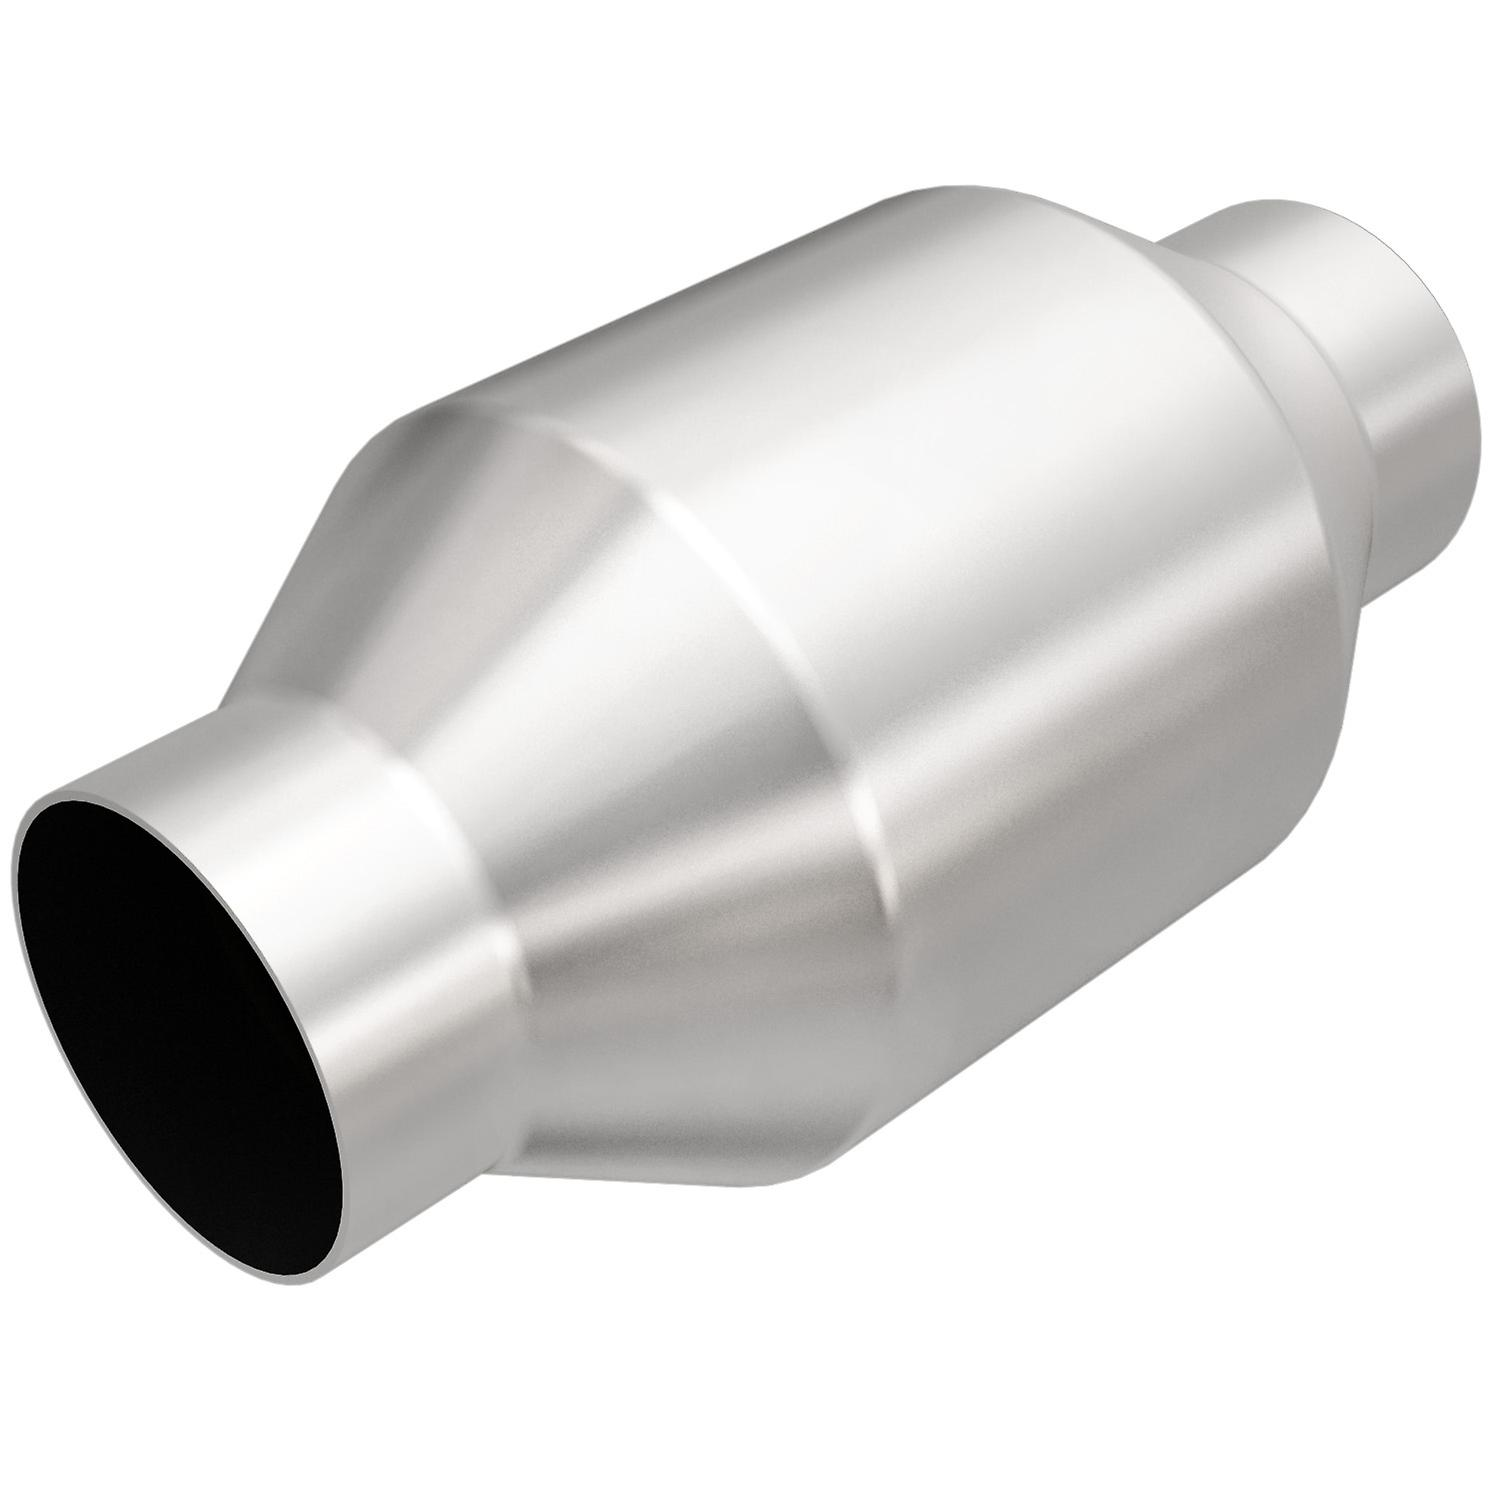 MagnaFFaible Exhaust Products 53956 Standard Grade